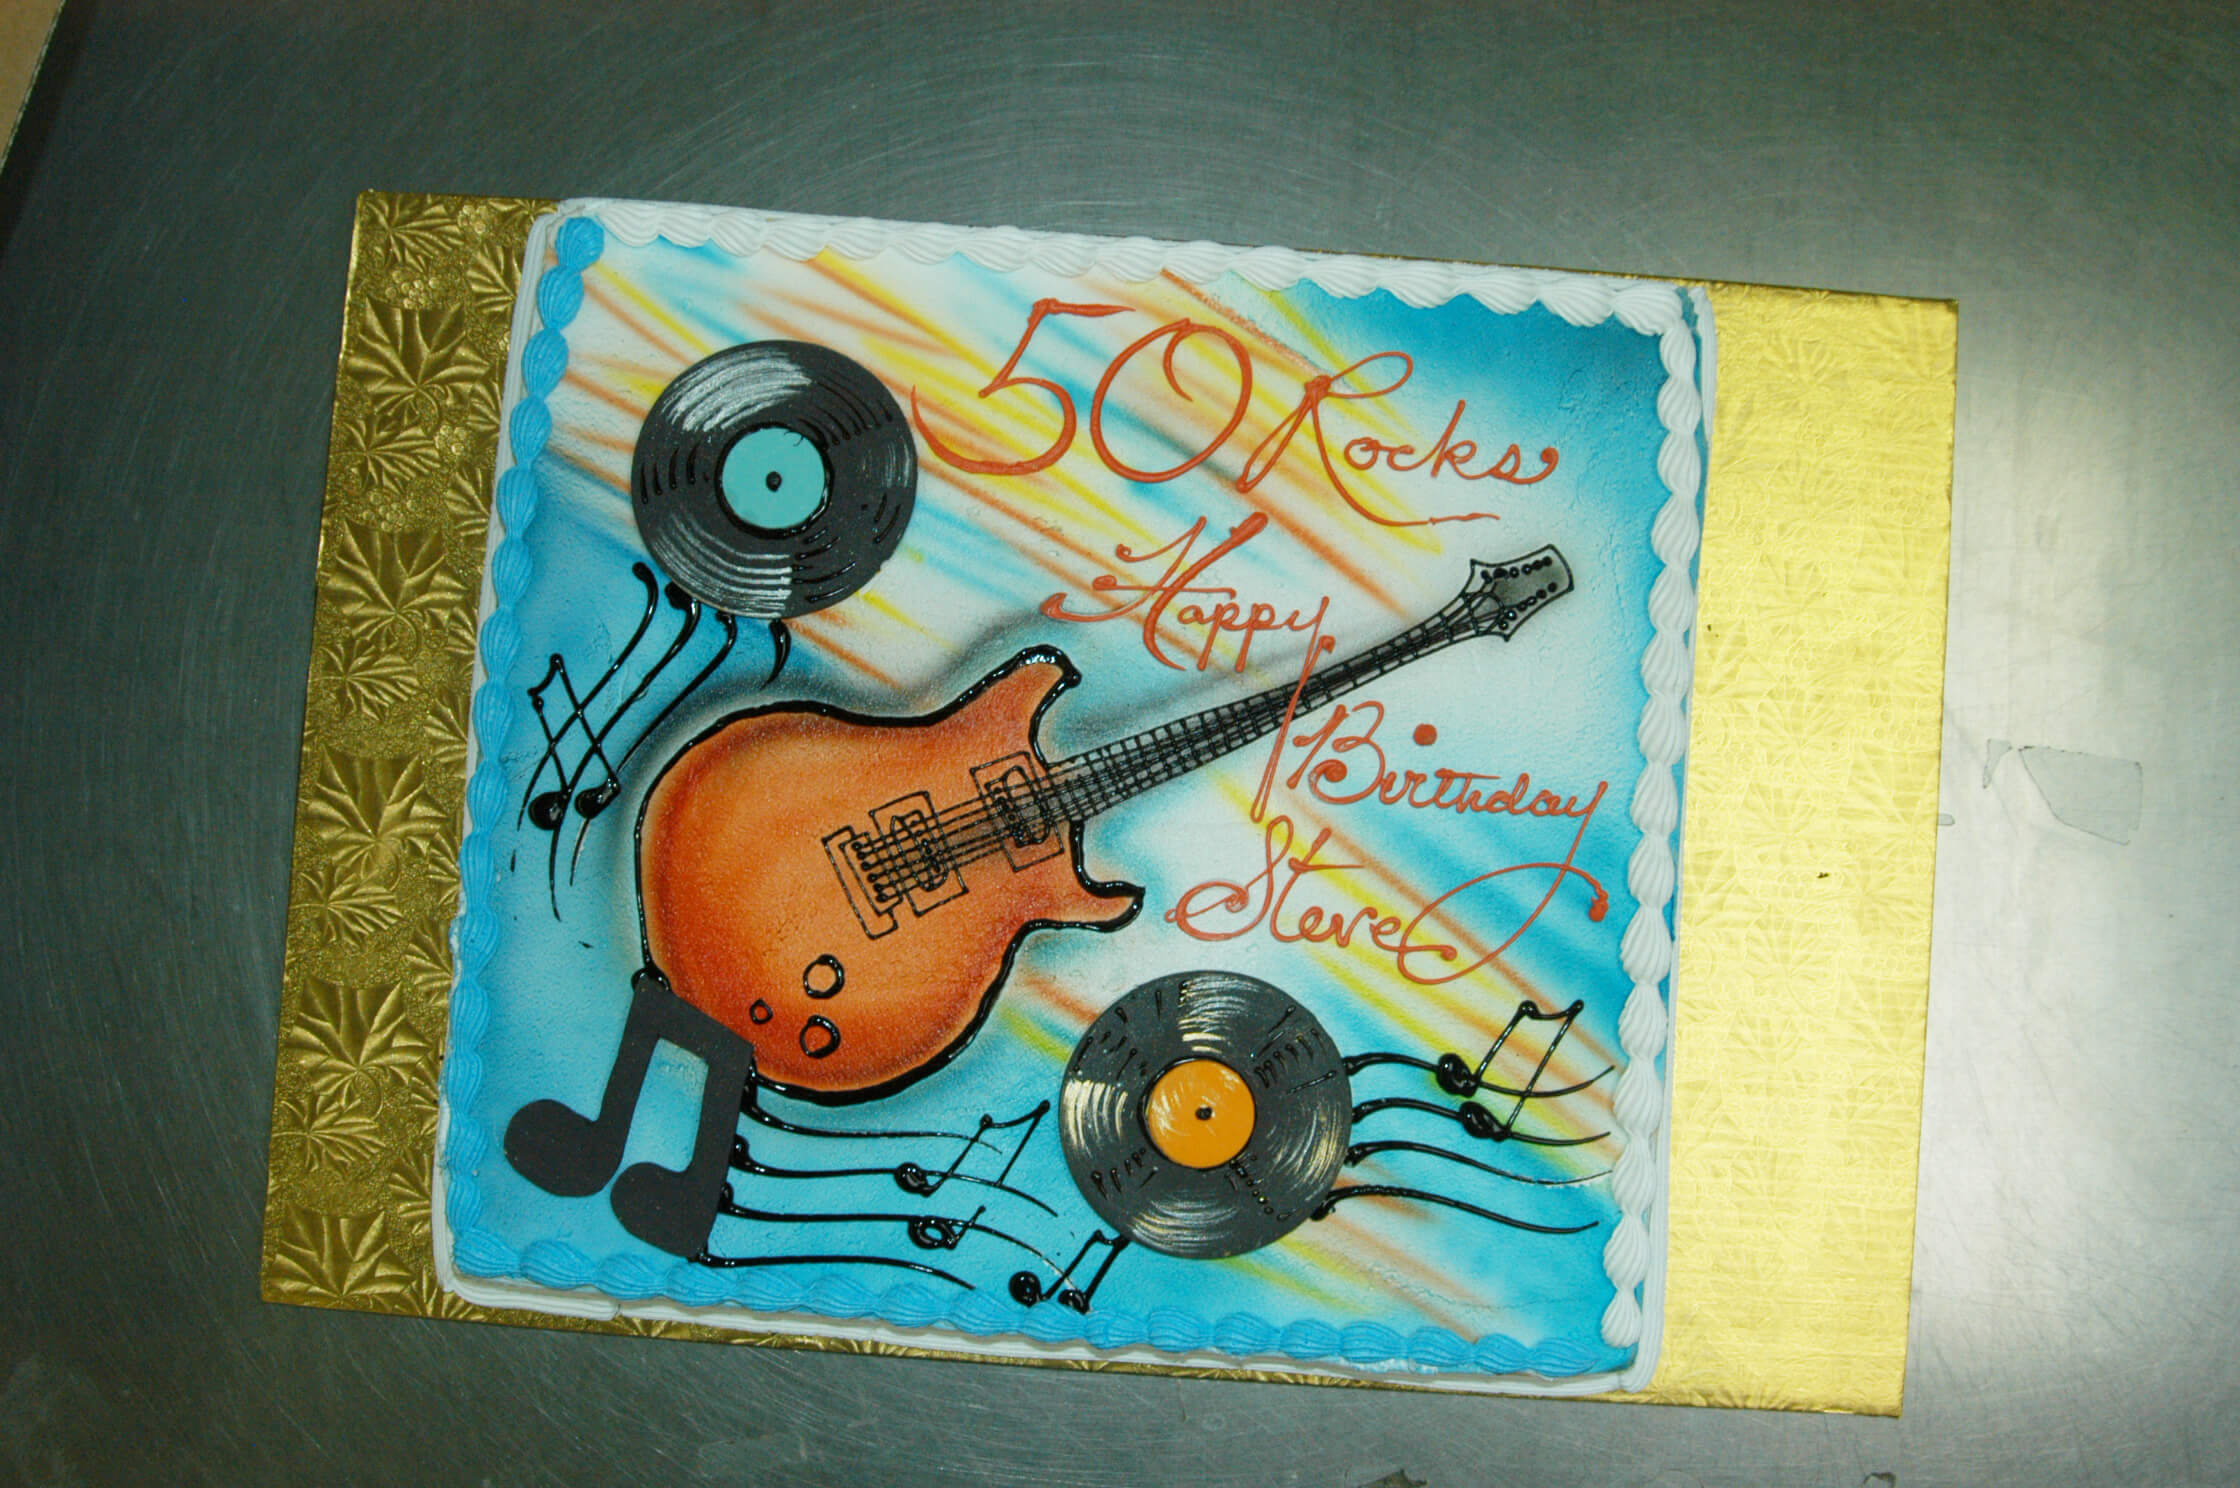 McArthur's Bakery Custom Cake with Guitar, Musical Notes, and Records